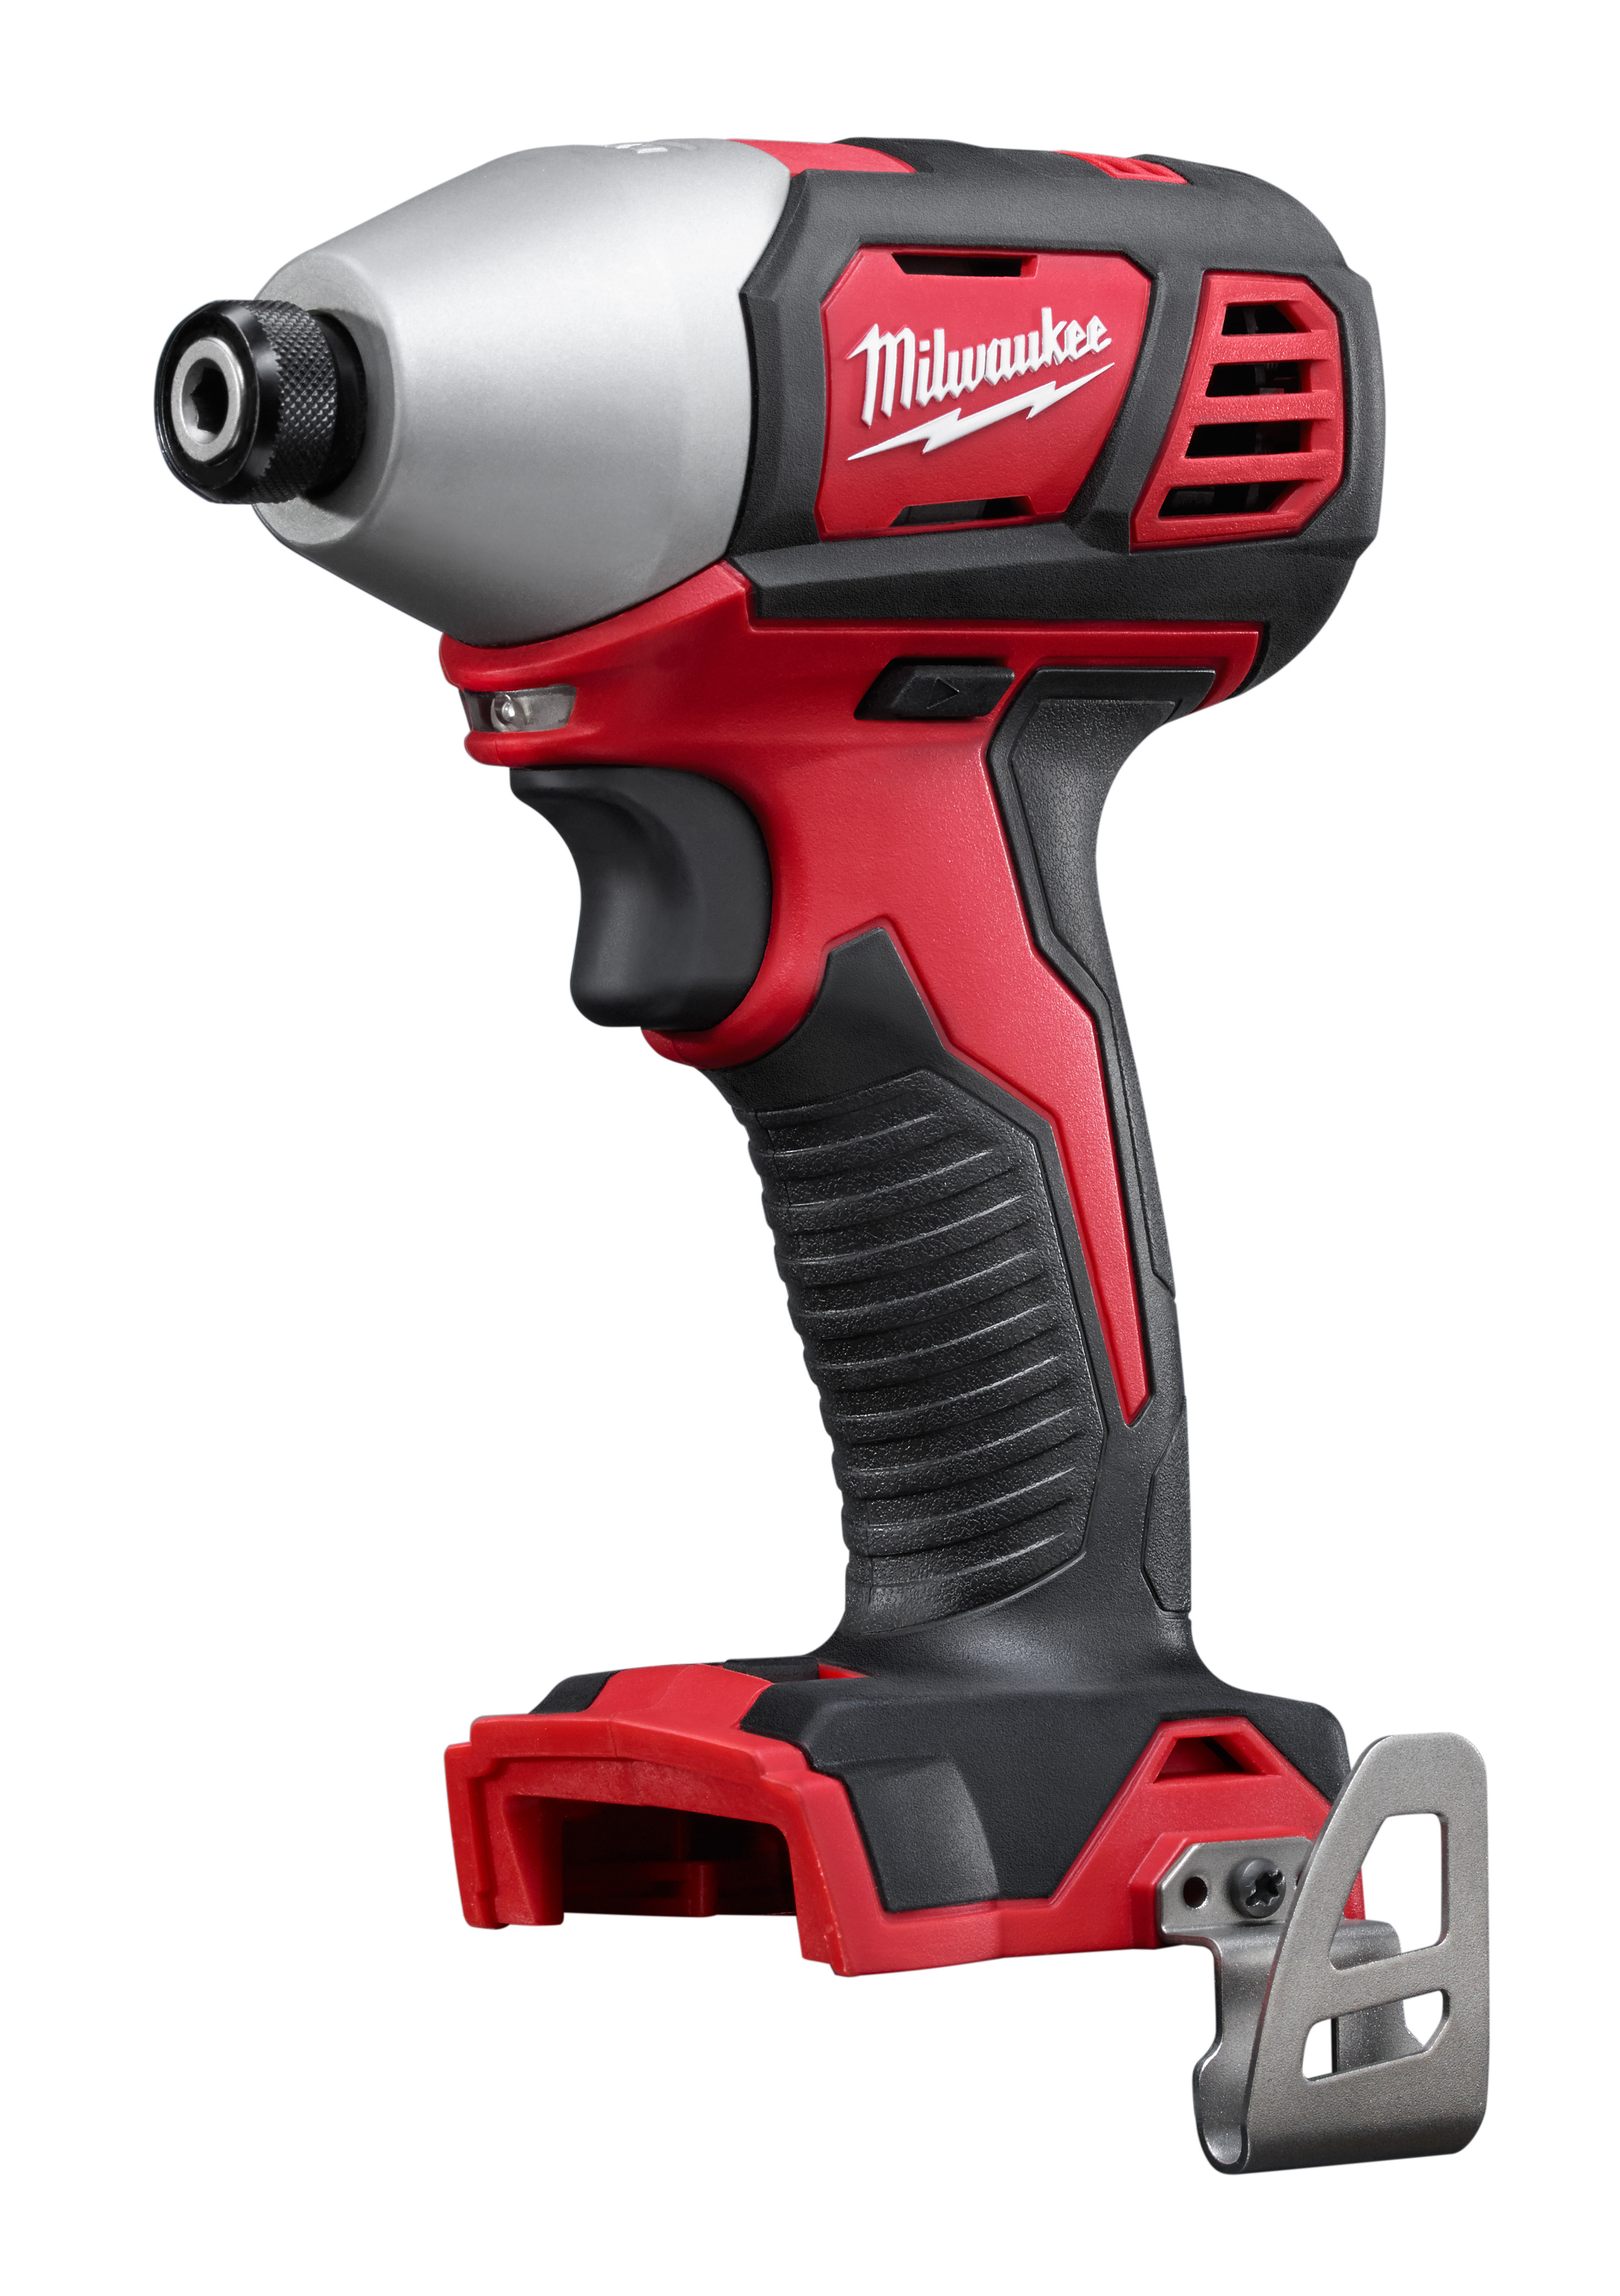 Milwaukee® M18™ 2657-20 2-Speed Compact Cordless Impact Driver With Belt Clip, 1/4 in Hex/Straight Drive, 3450 bpm, 1500 in-lb Torque, 18 VAC, 5-1/2 in OAL